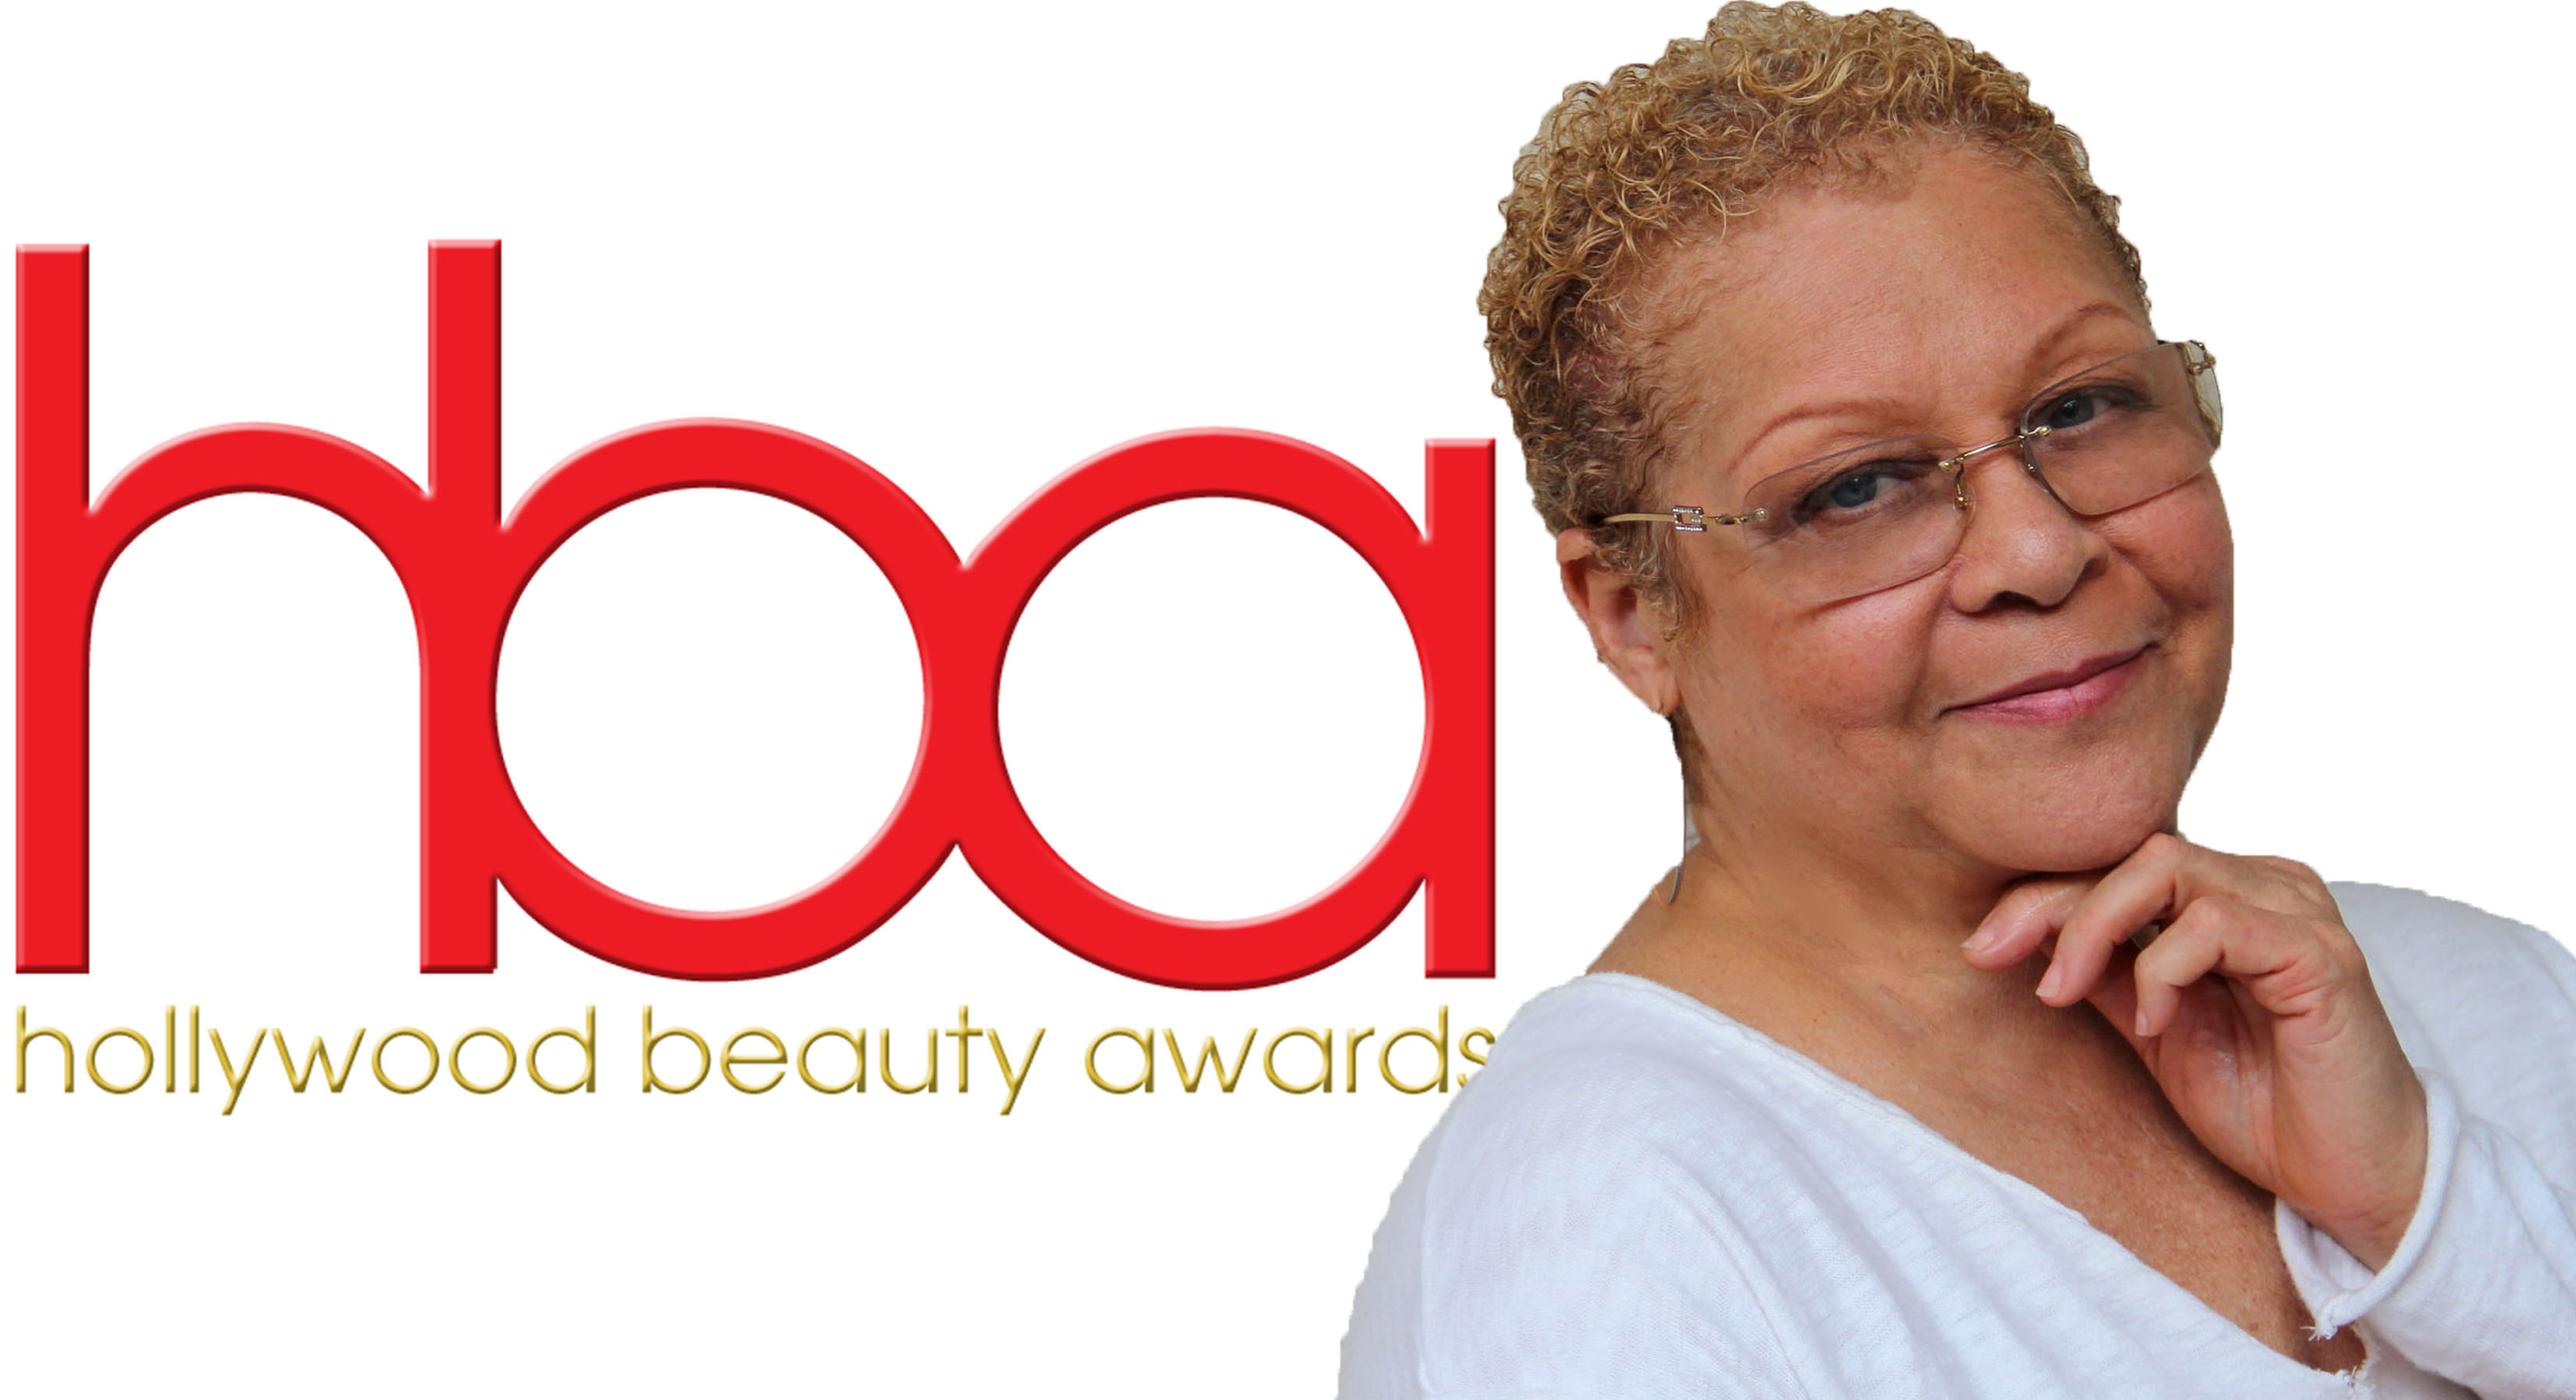 Laini Thompson Hollywood Beauty Award makeup honoree 2016